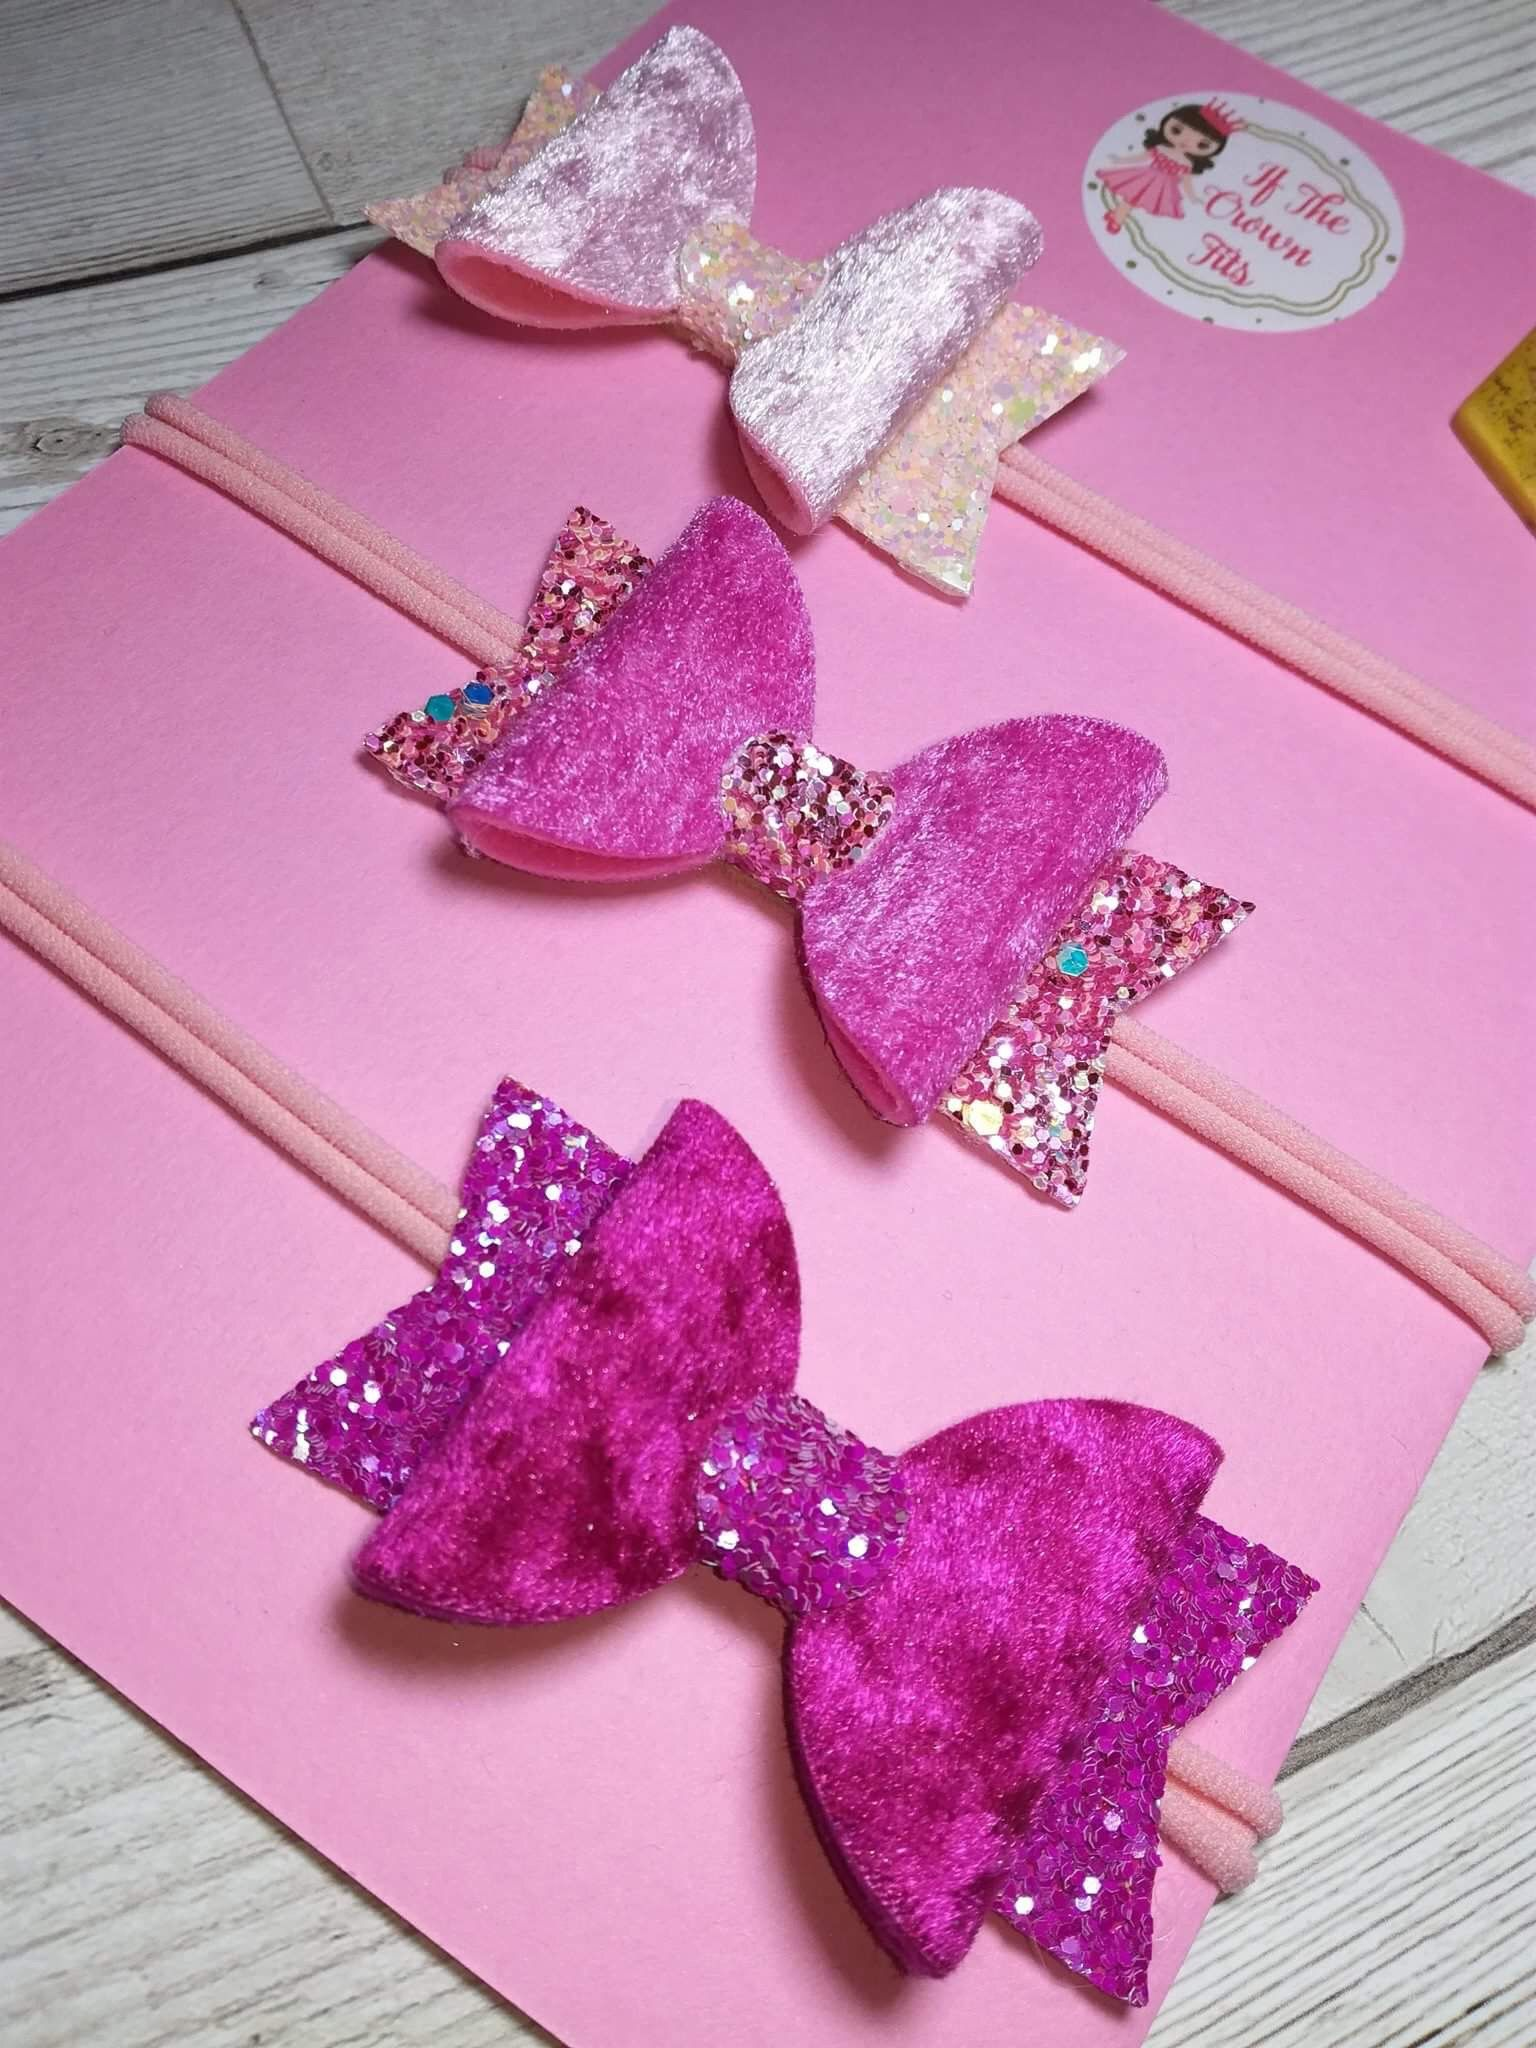 Super cute crushed velvet and glitter all pink super girly great